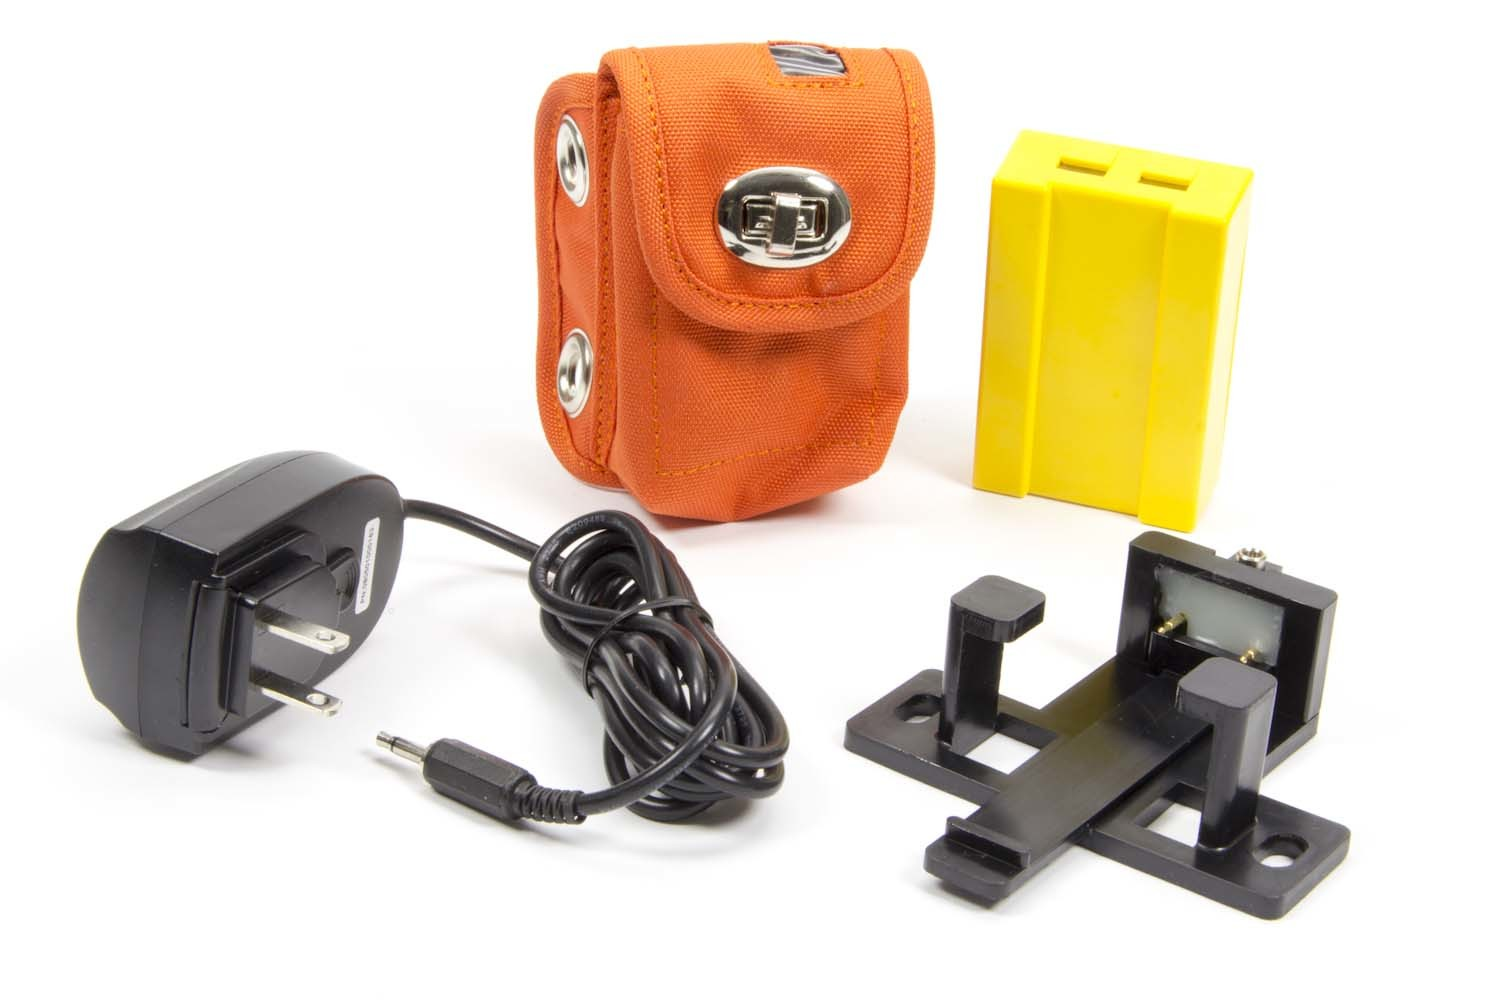 Raceceiver Transponder Package w/ Mnt. Pouch & Charger